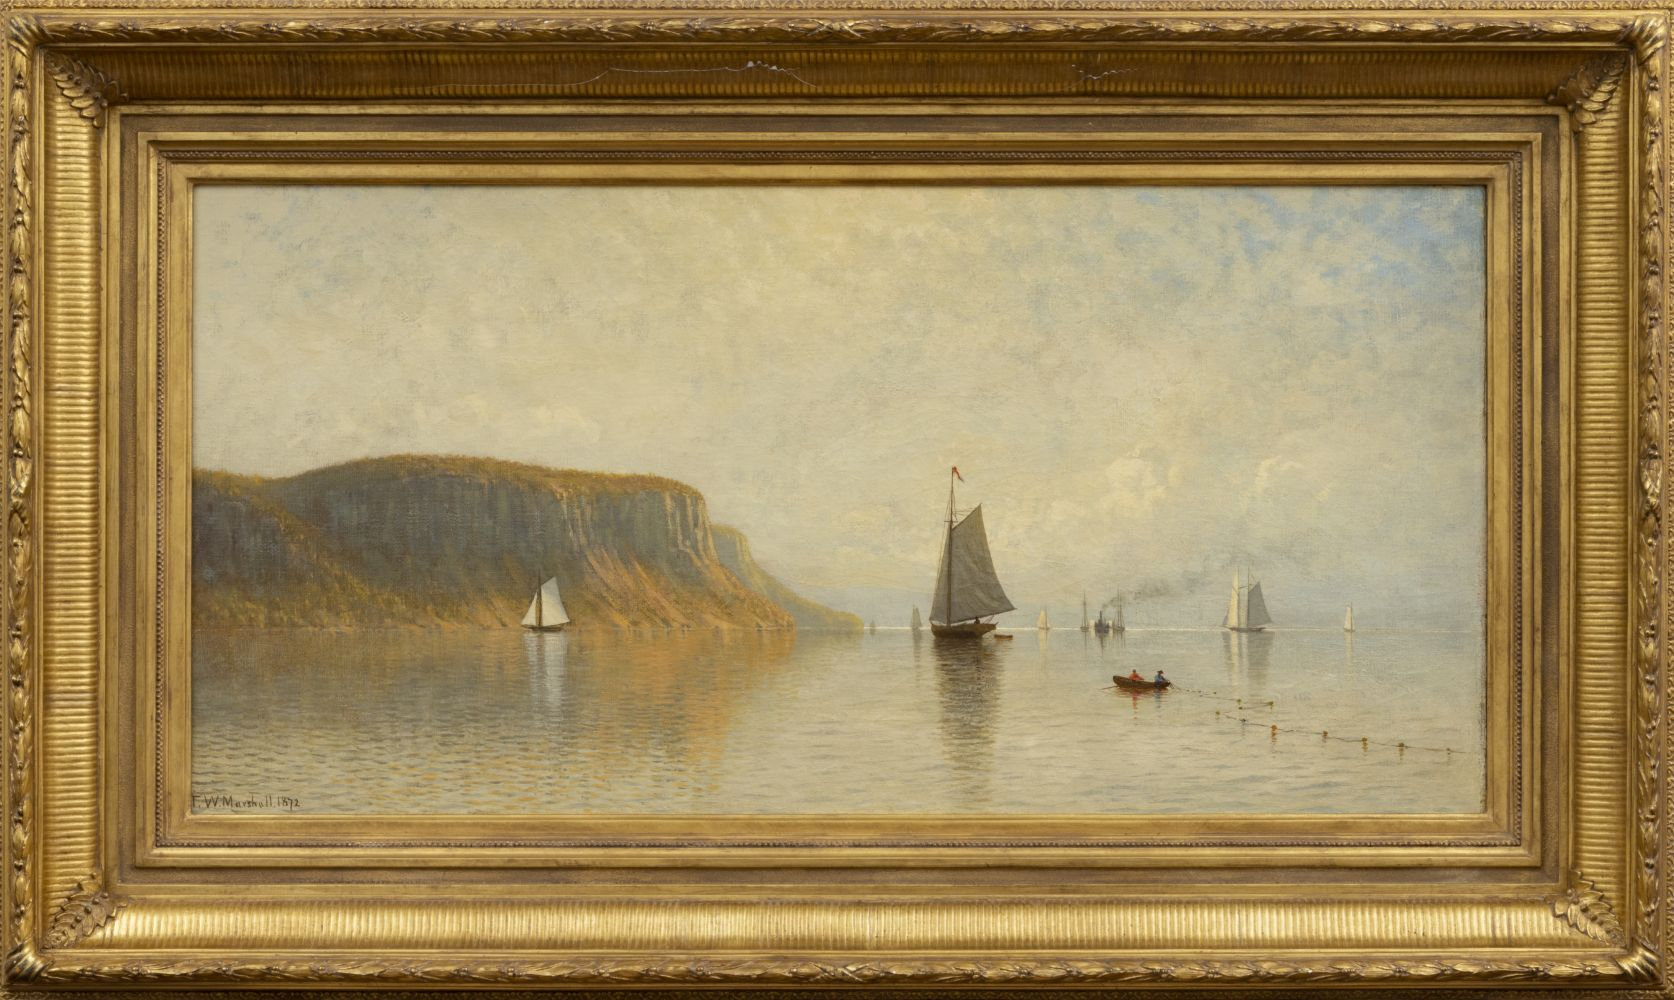 Thomas W. Marshall (1850-1874) Hudson River Near Hastings, 1872. Oil on canvas, 18 x 36 in. Signed and dated lower left: Thomas W. Marshall 1872 (framed)